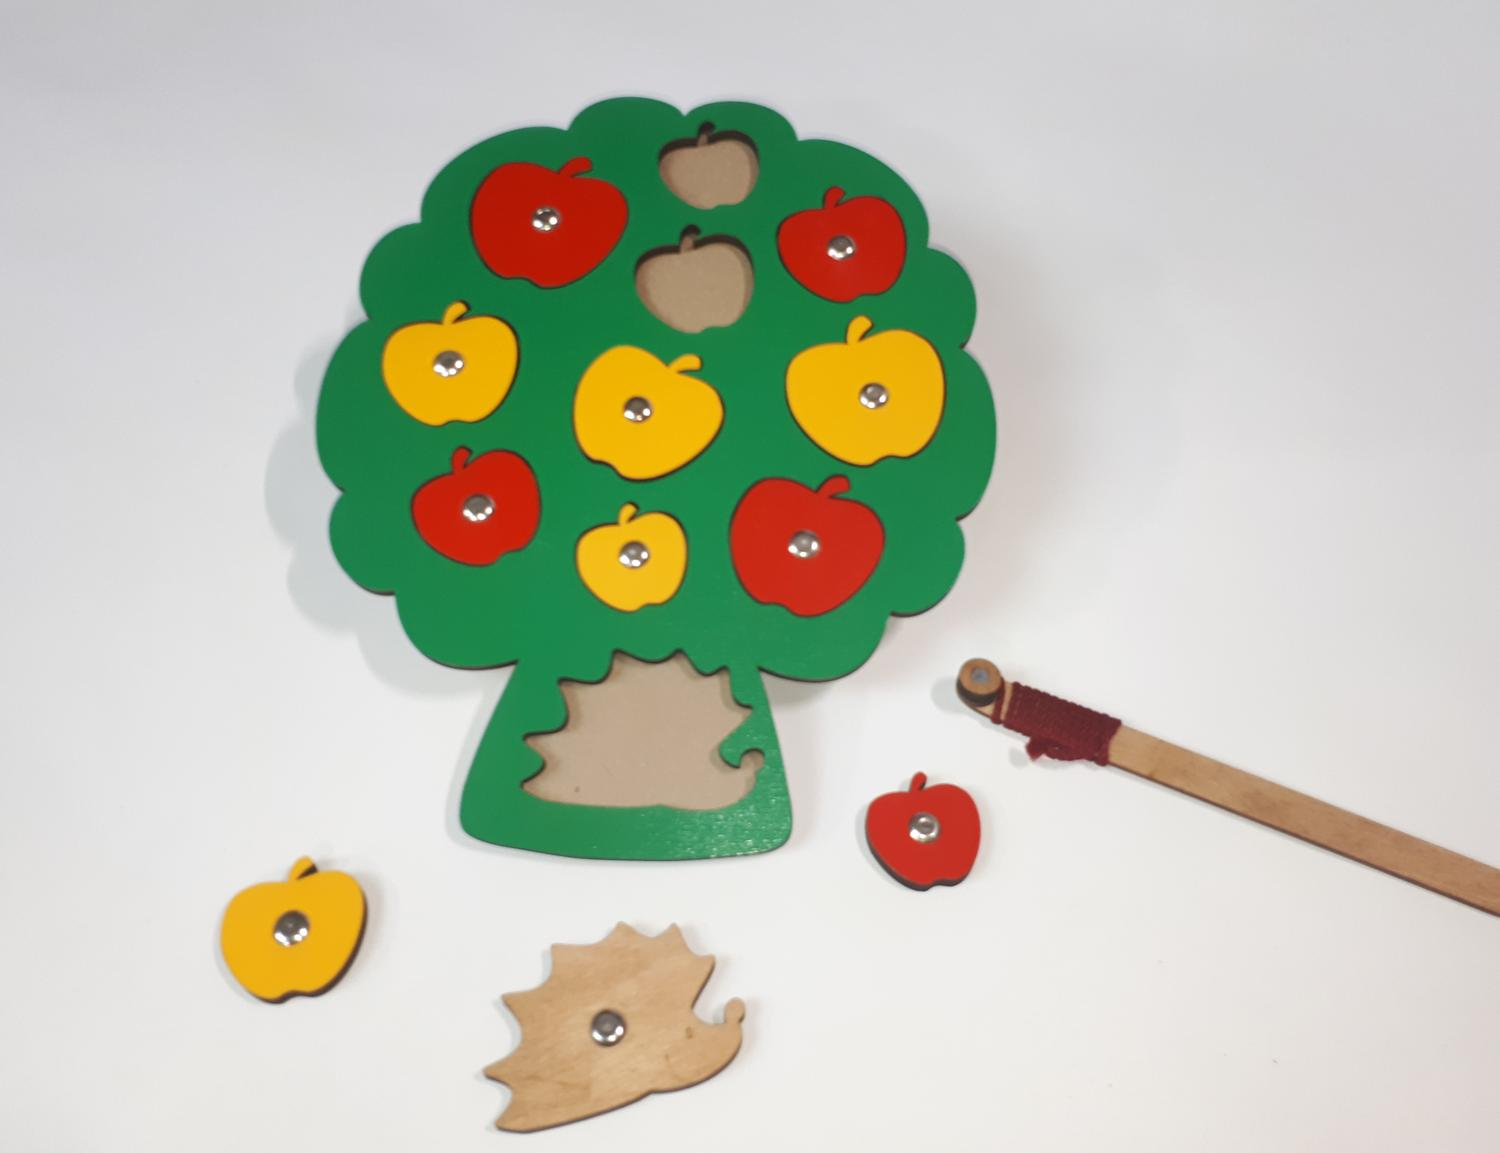 Laser Cut Simple Apple Peg Puzzle Wooden Toy For Preschool Early Learning Free Vector